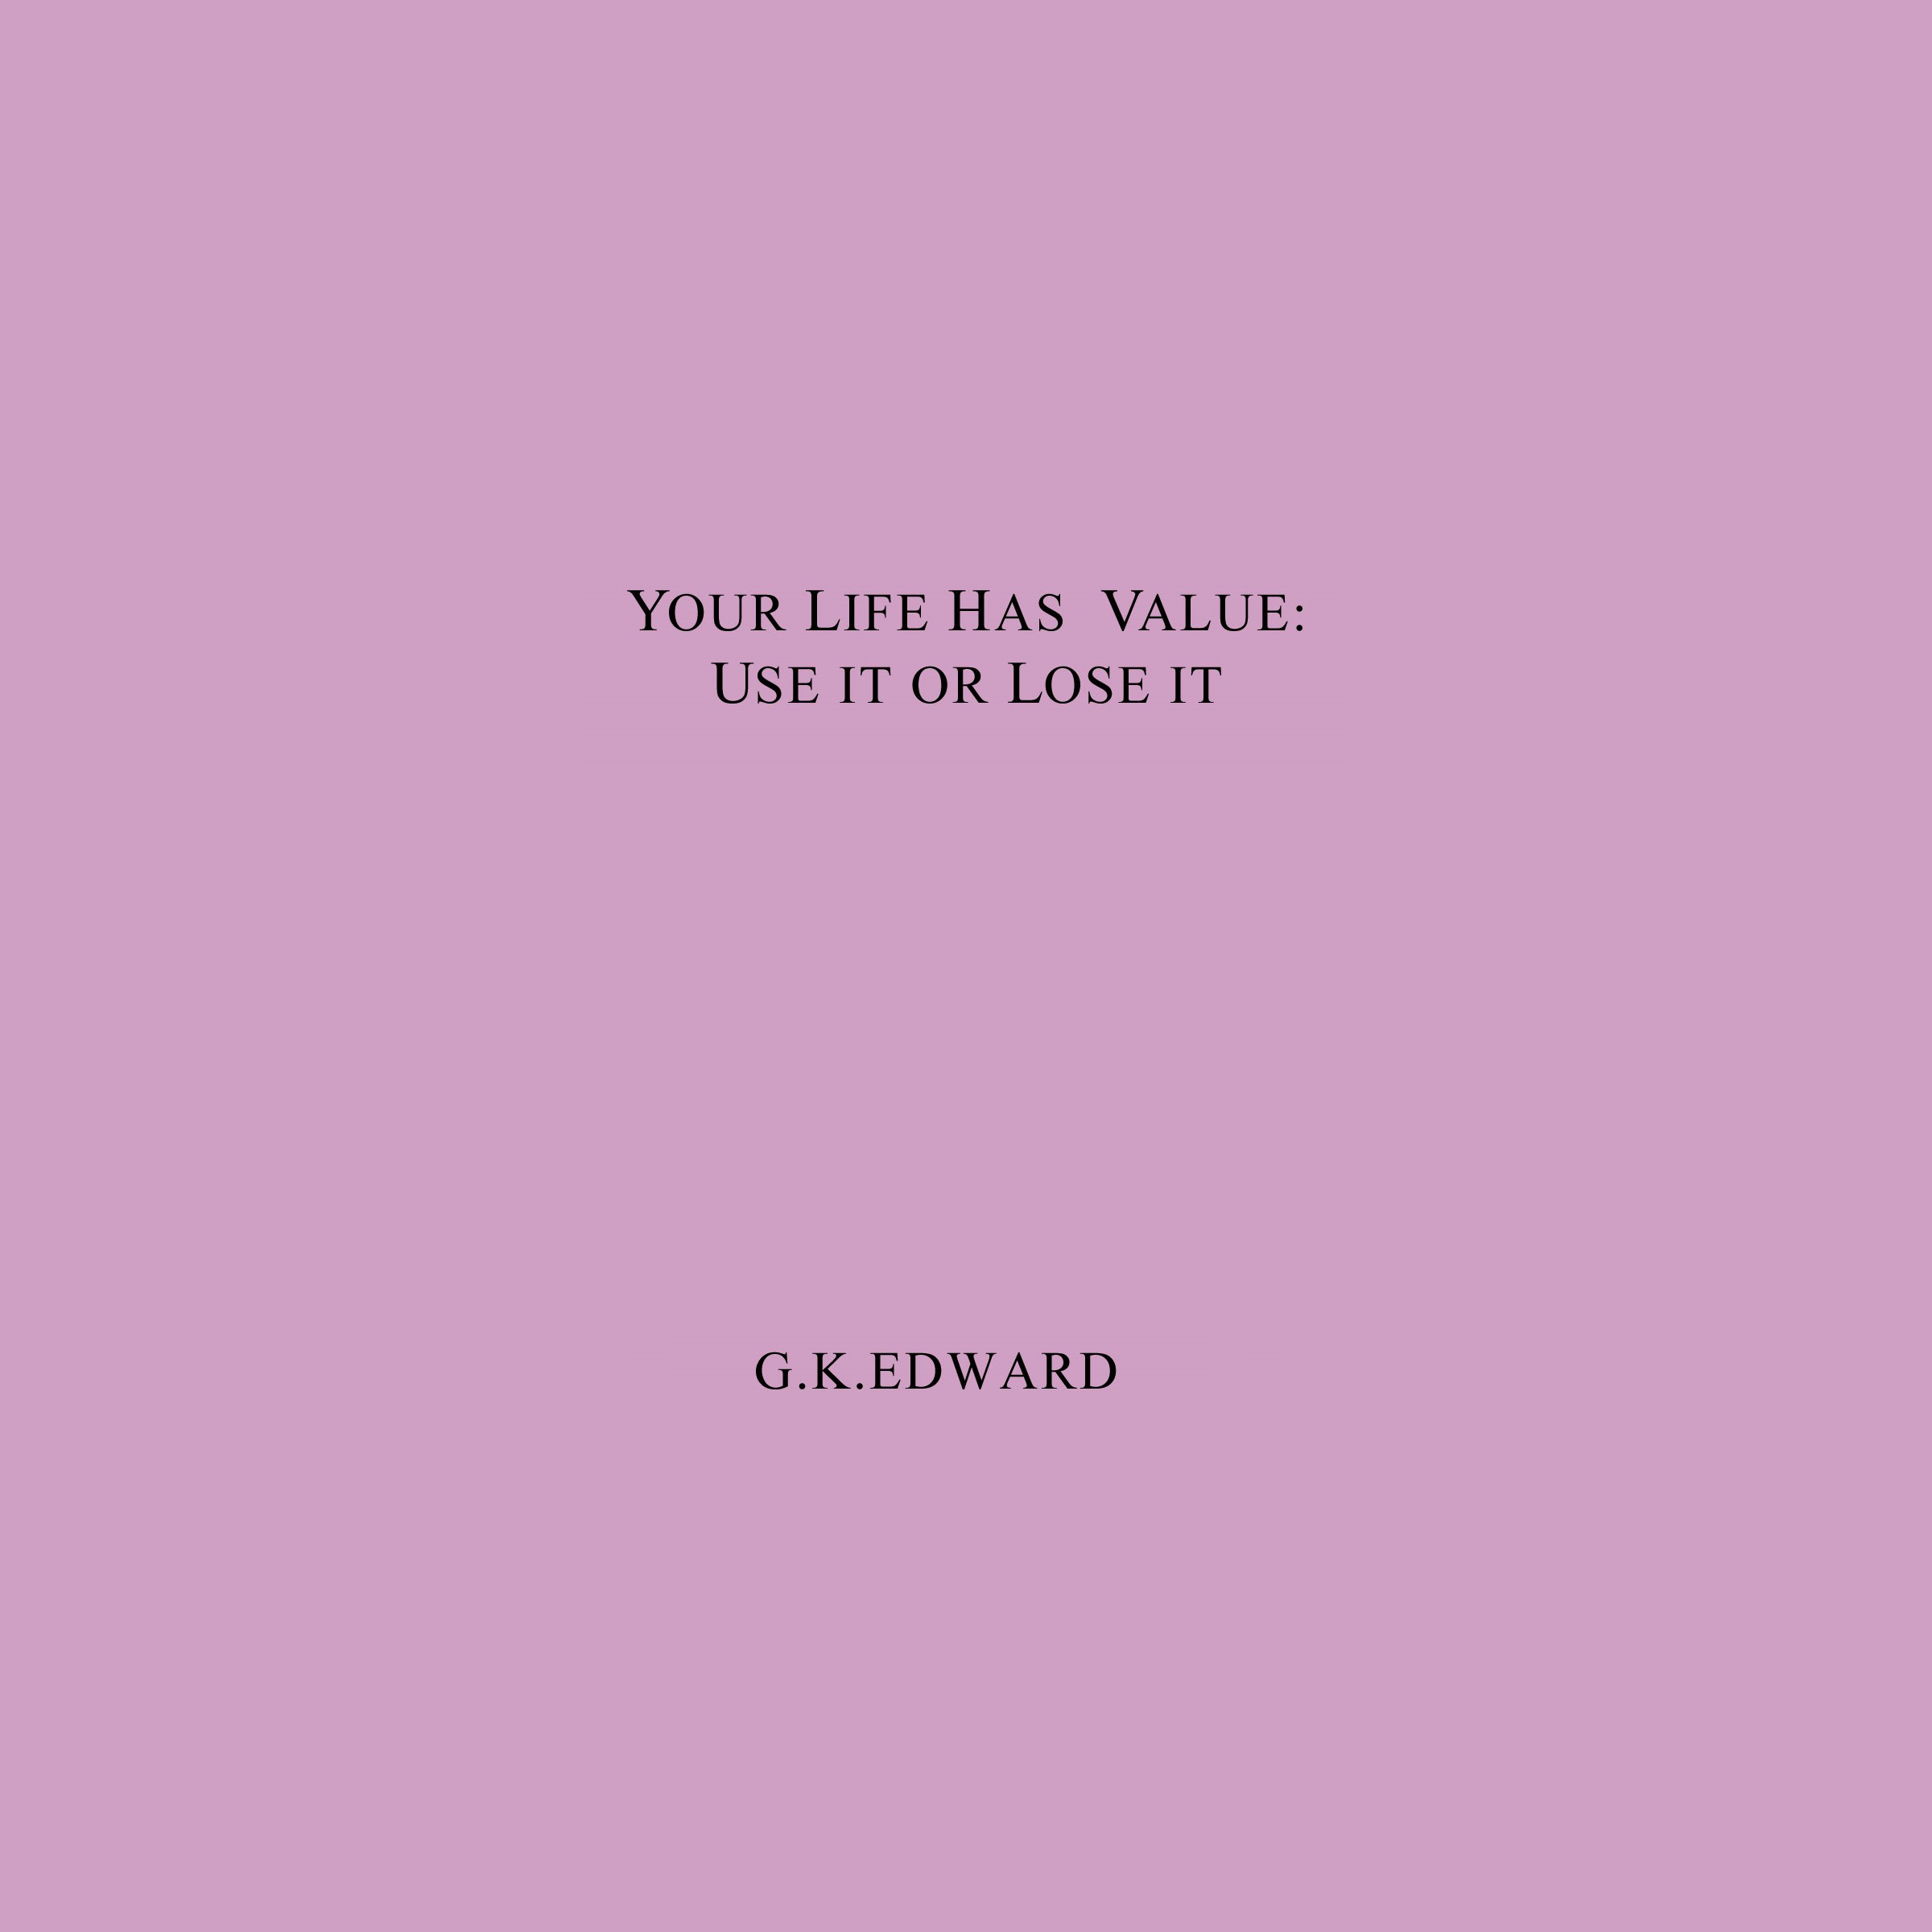 Printable Your Life Has Value: Use It or Lose It: How to Realize Your Life's Value and Fulfill Your Full Potential Audiobook Cover Art